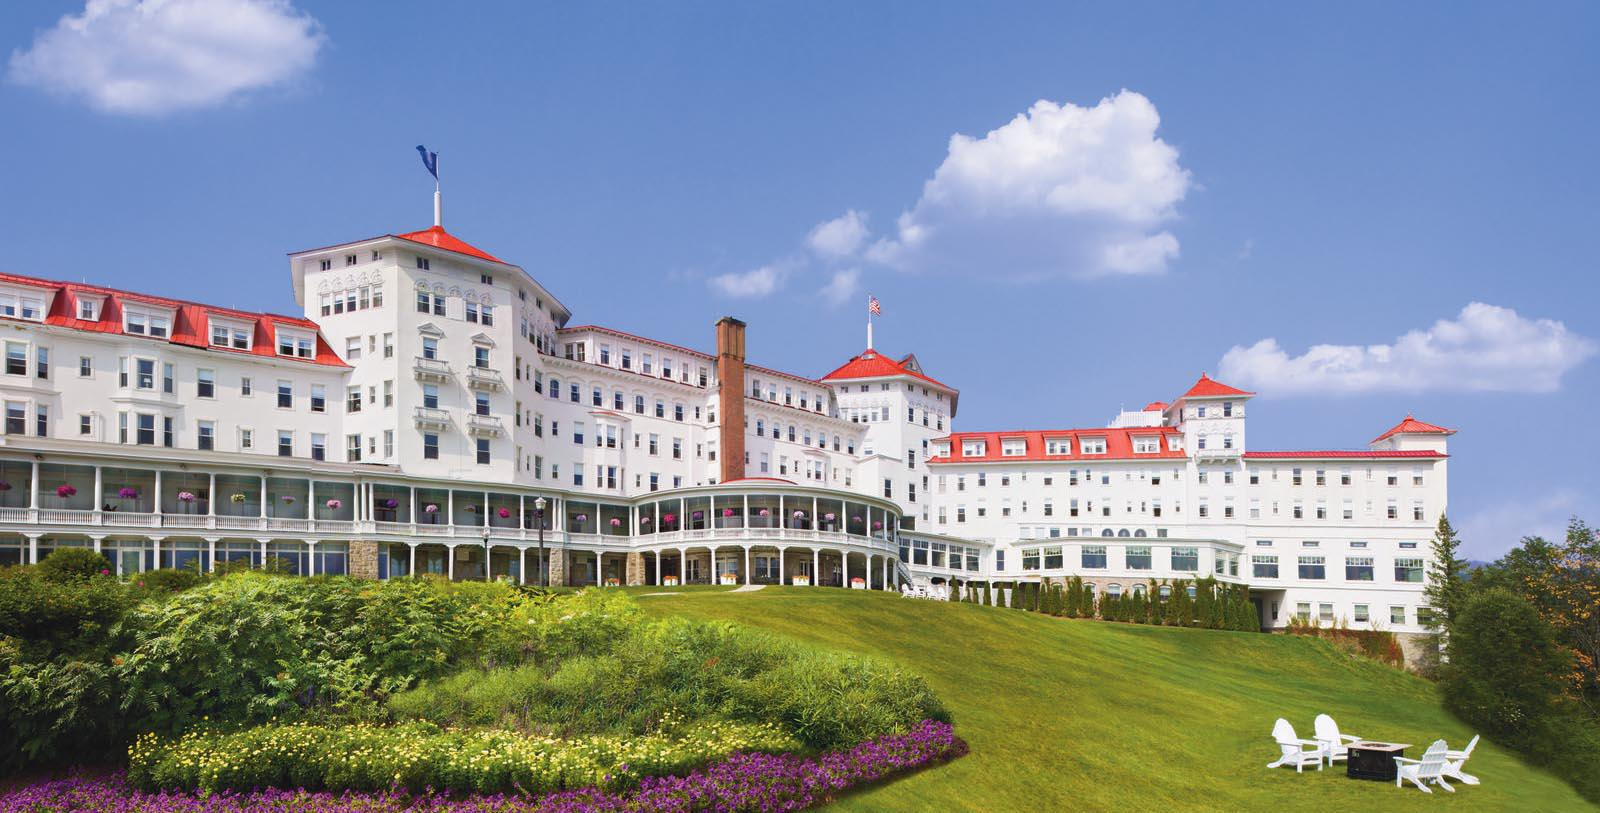 Image of Hotel Exterior, Omni Mount Washington Resort, Bretton Woods, New Hampshire, 1902, Member of Historic Hotels of America, Special Offers, Discounted Rates, Families, Romantic Escape, Honeymoons, Anniversaries, Reunions